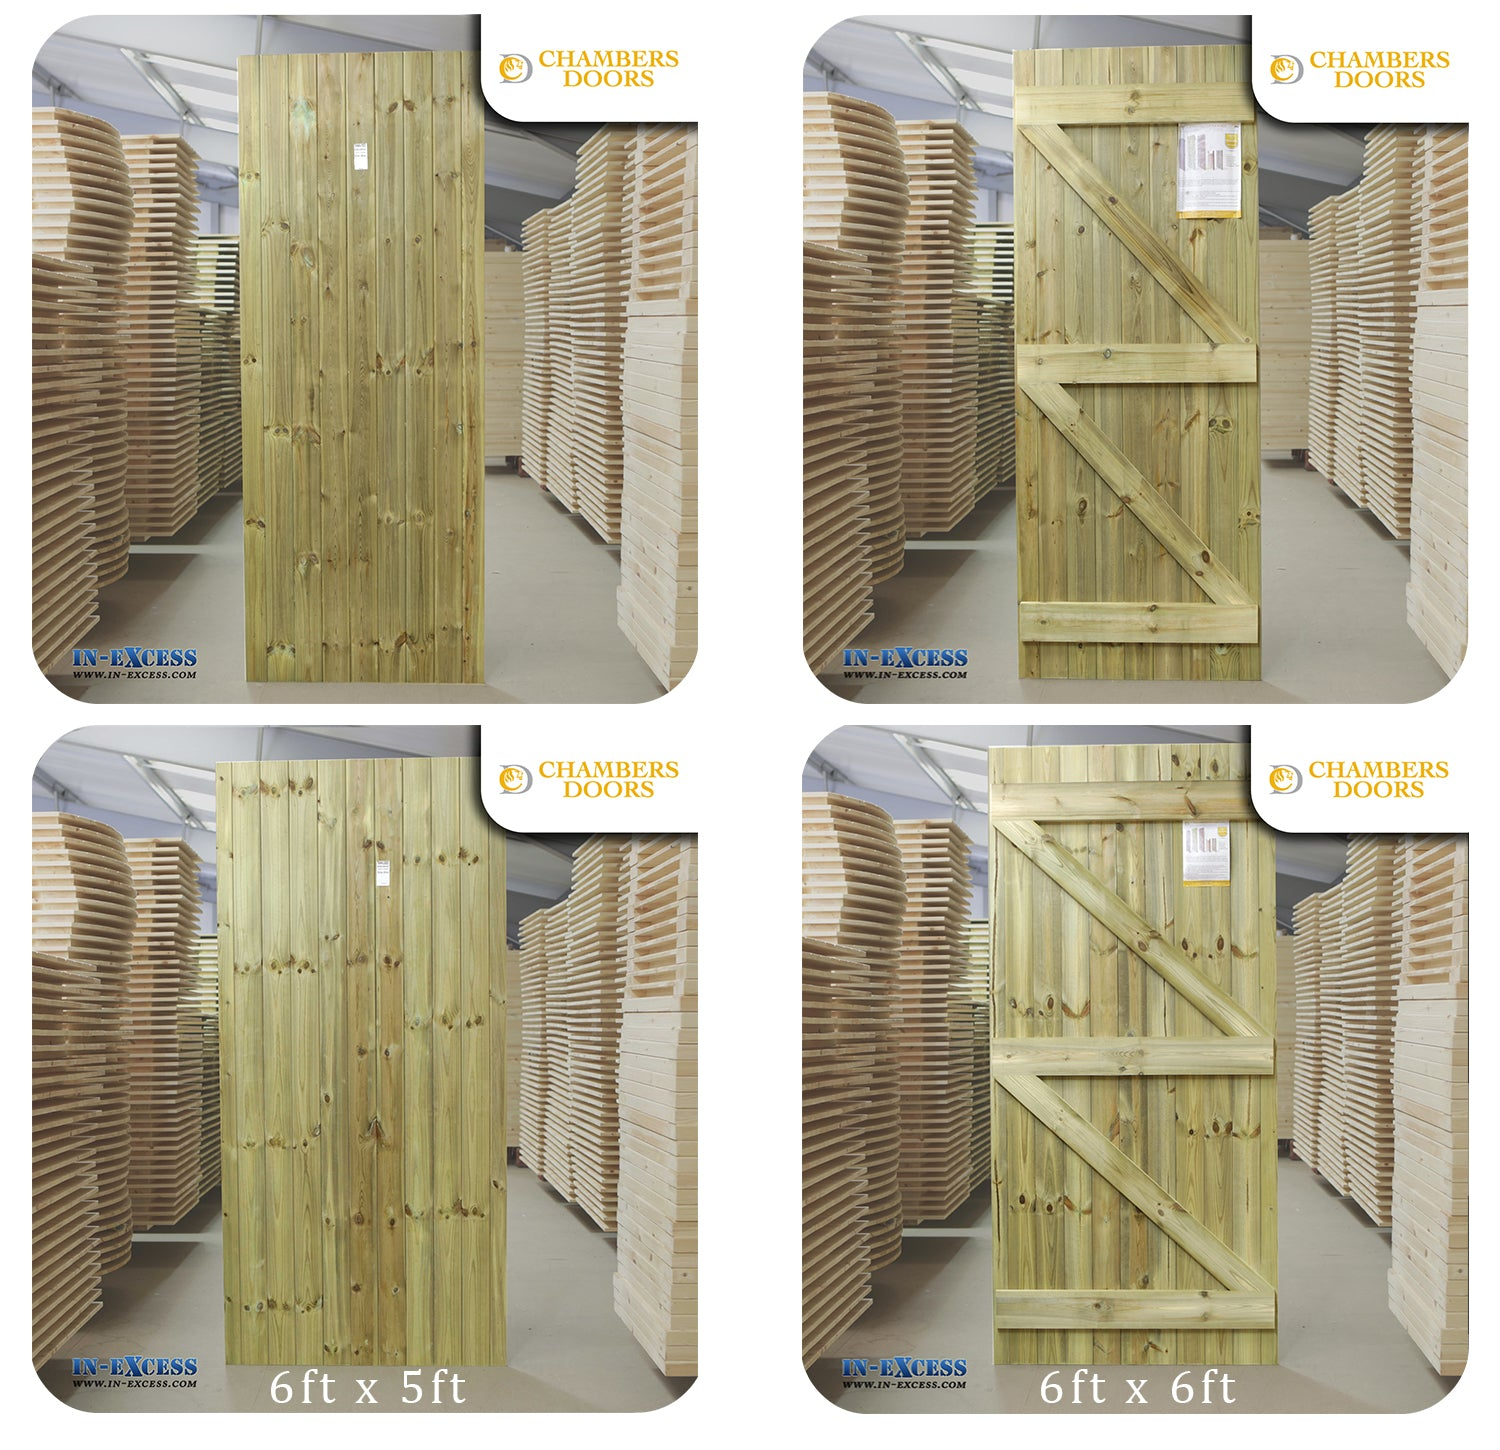 Chambers Doors and Gates Example products image 2